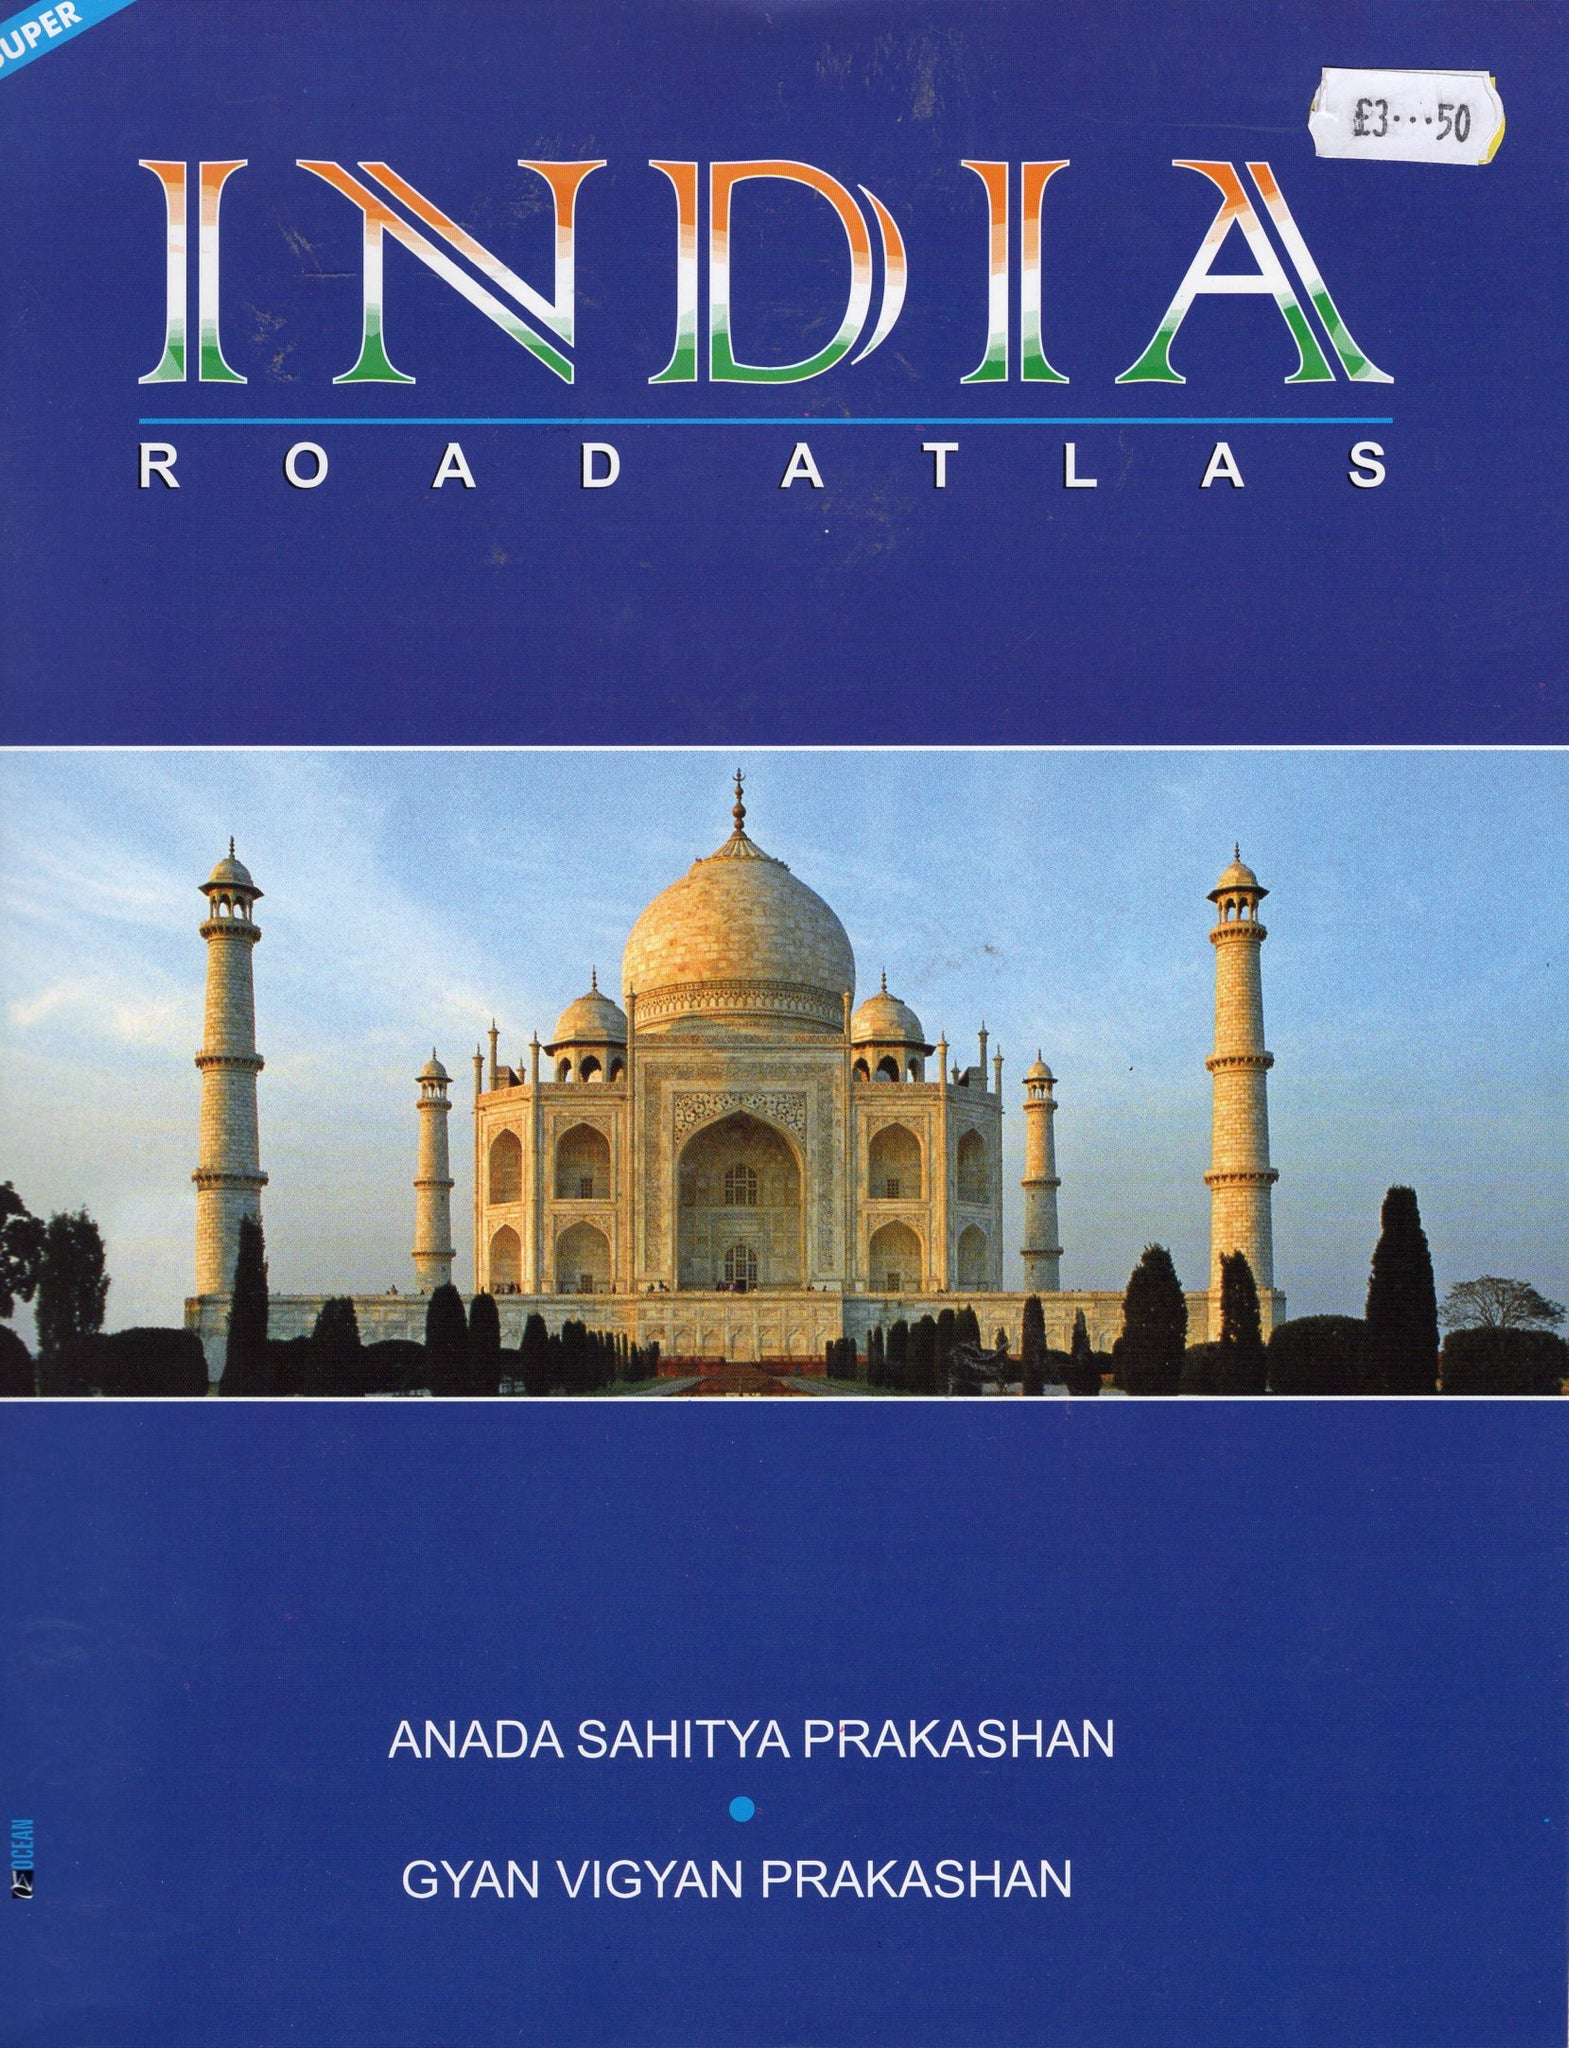 India Road Atlas